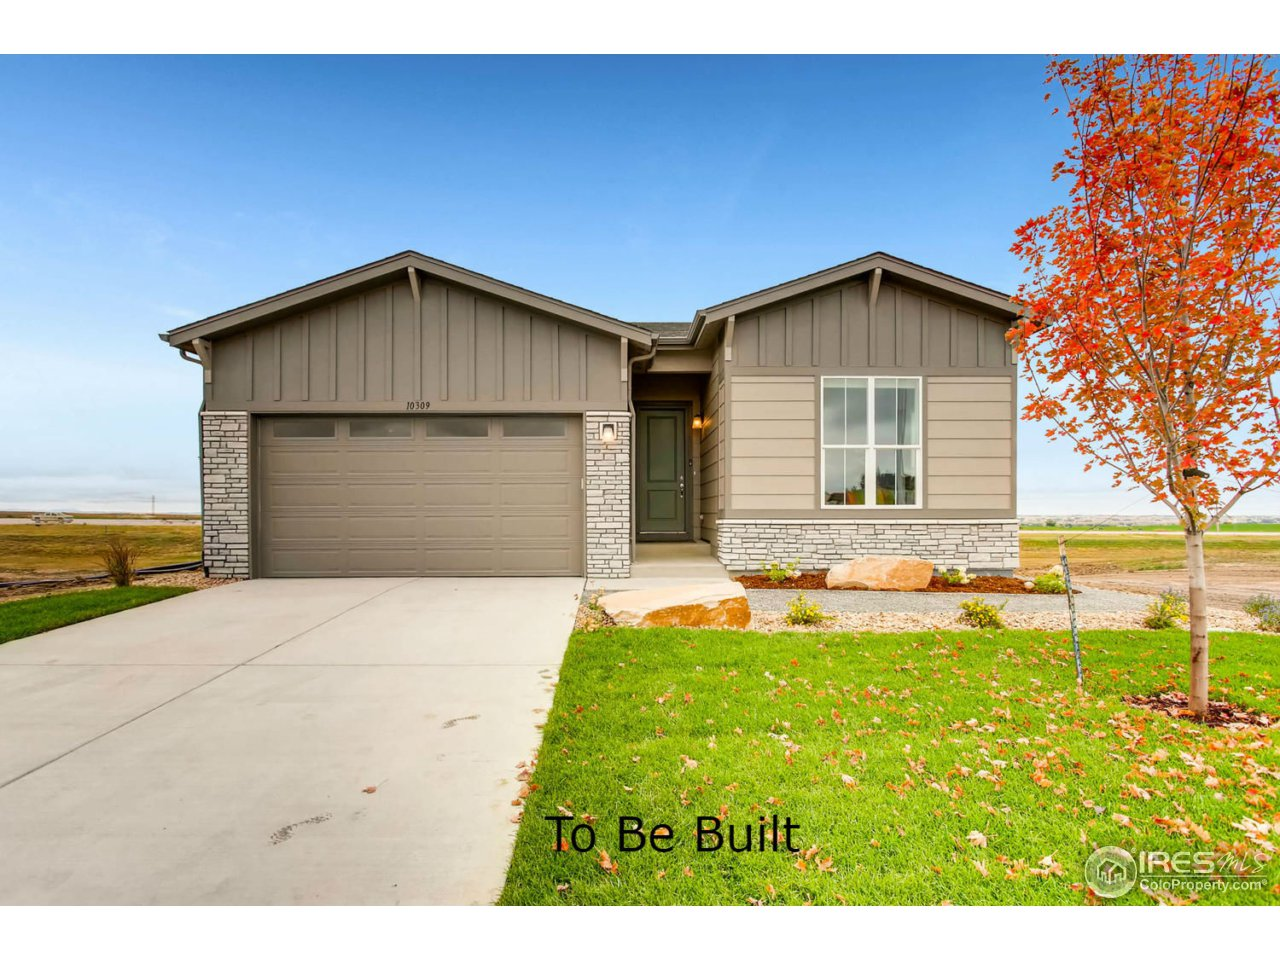 1103 102nd Ave, Greeley, CO 80634